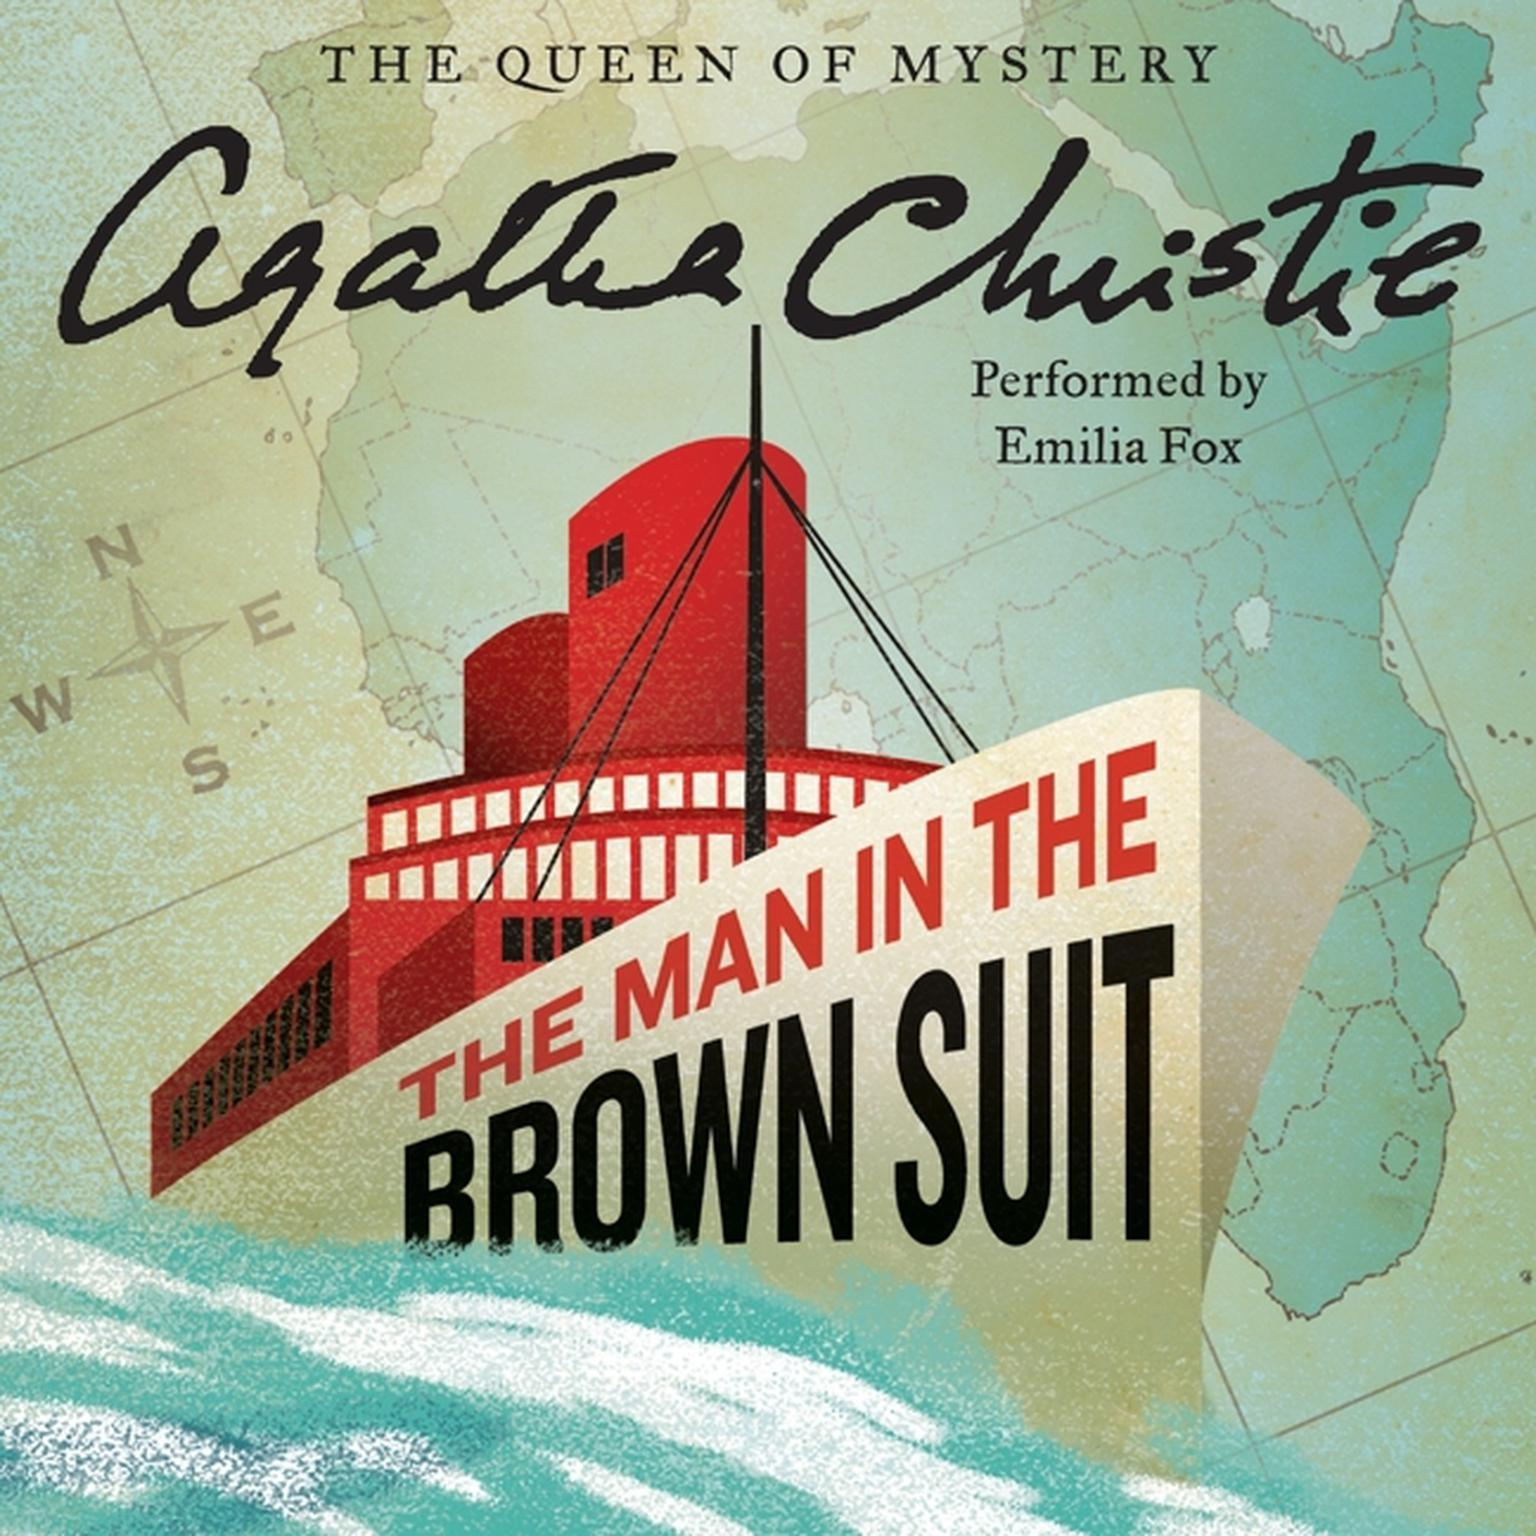 Download The Man in the Brown Suit Audiobook by Agatha Christie ...